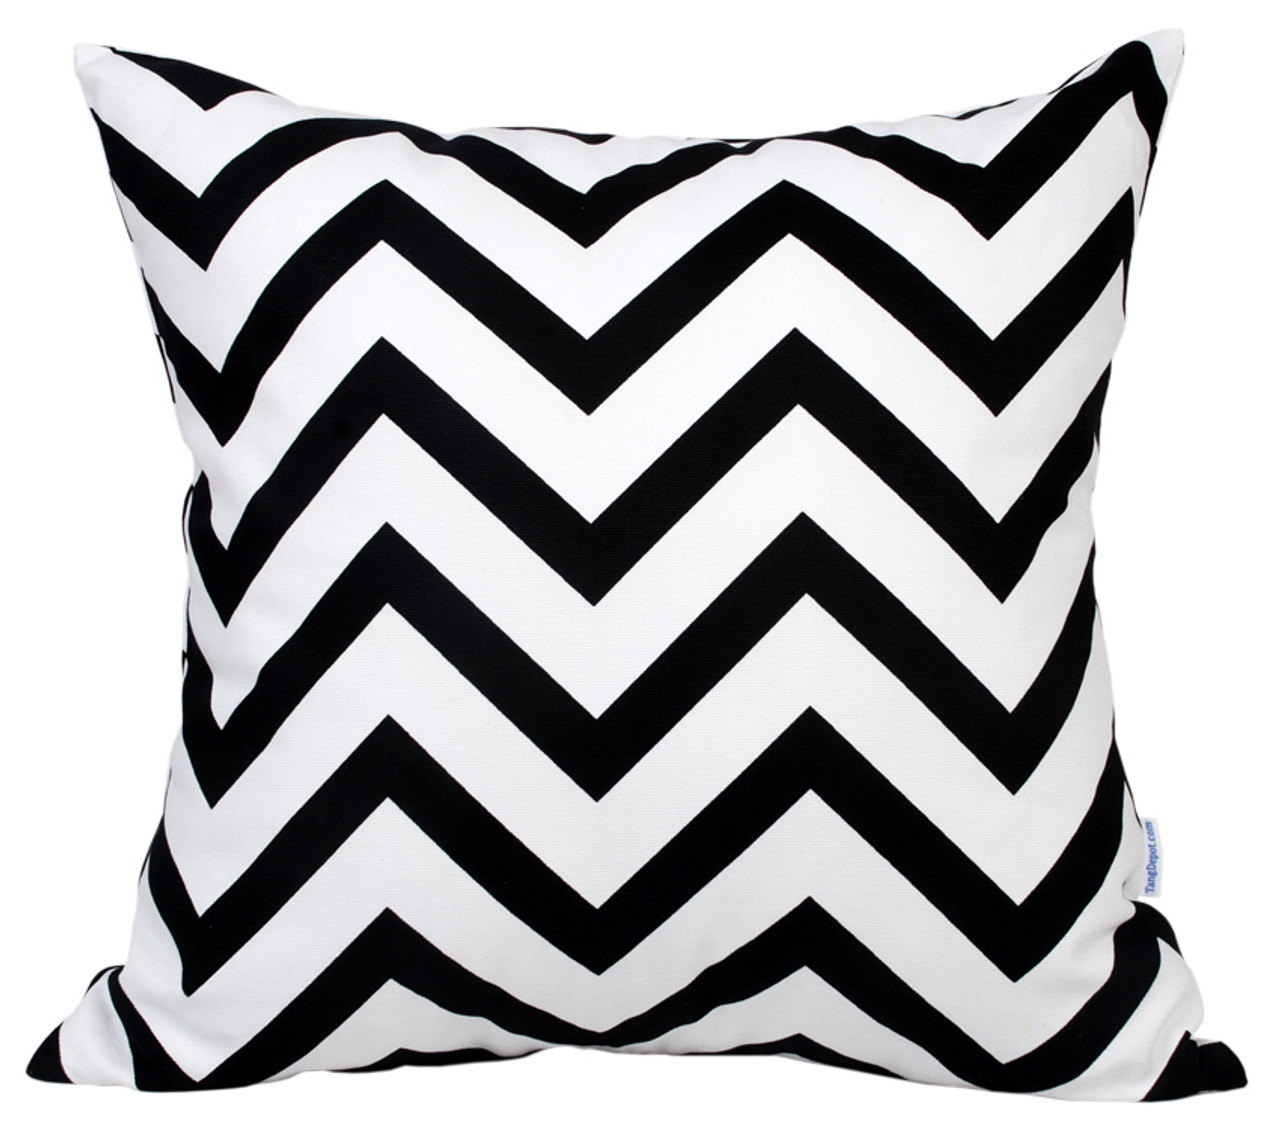 TangDepot Decorative Handmade Zebra-Stripe / Wavy Line 100% Cotton Throw Pillow Covers /Pillow Shams, Many colors and sizes